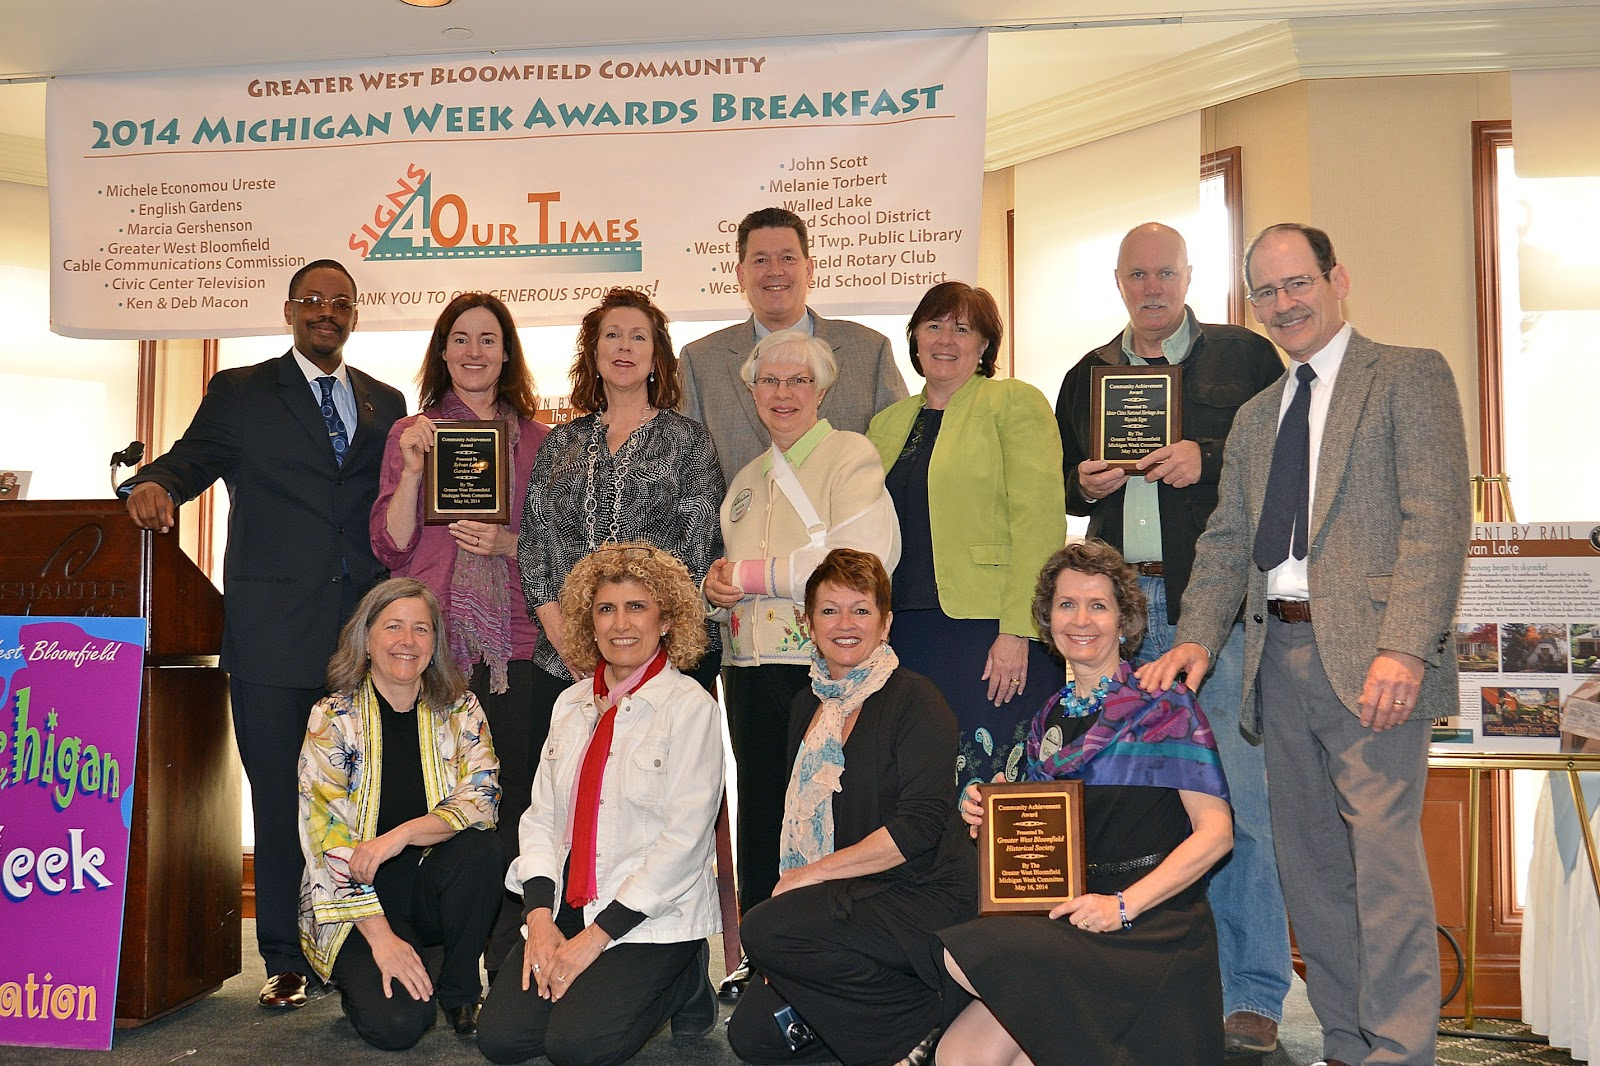 Greater West Bloomfield Michigan Week Community Awards Breakfast